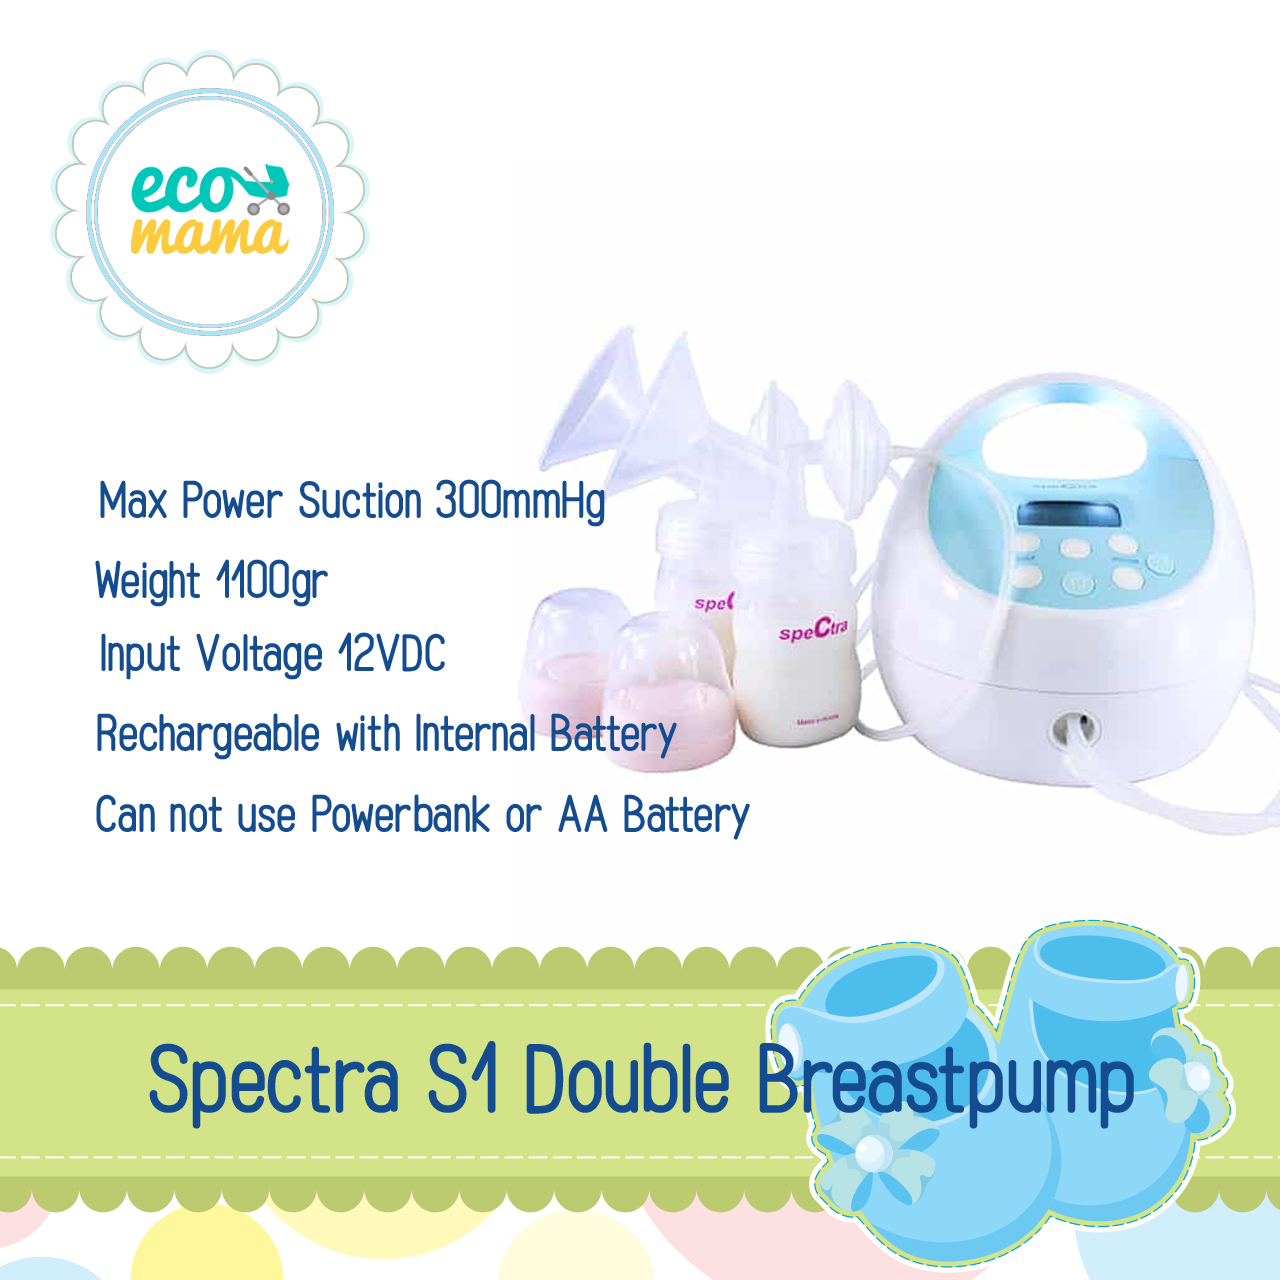 Spectra S1 Double Breastpump